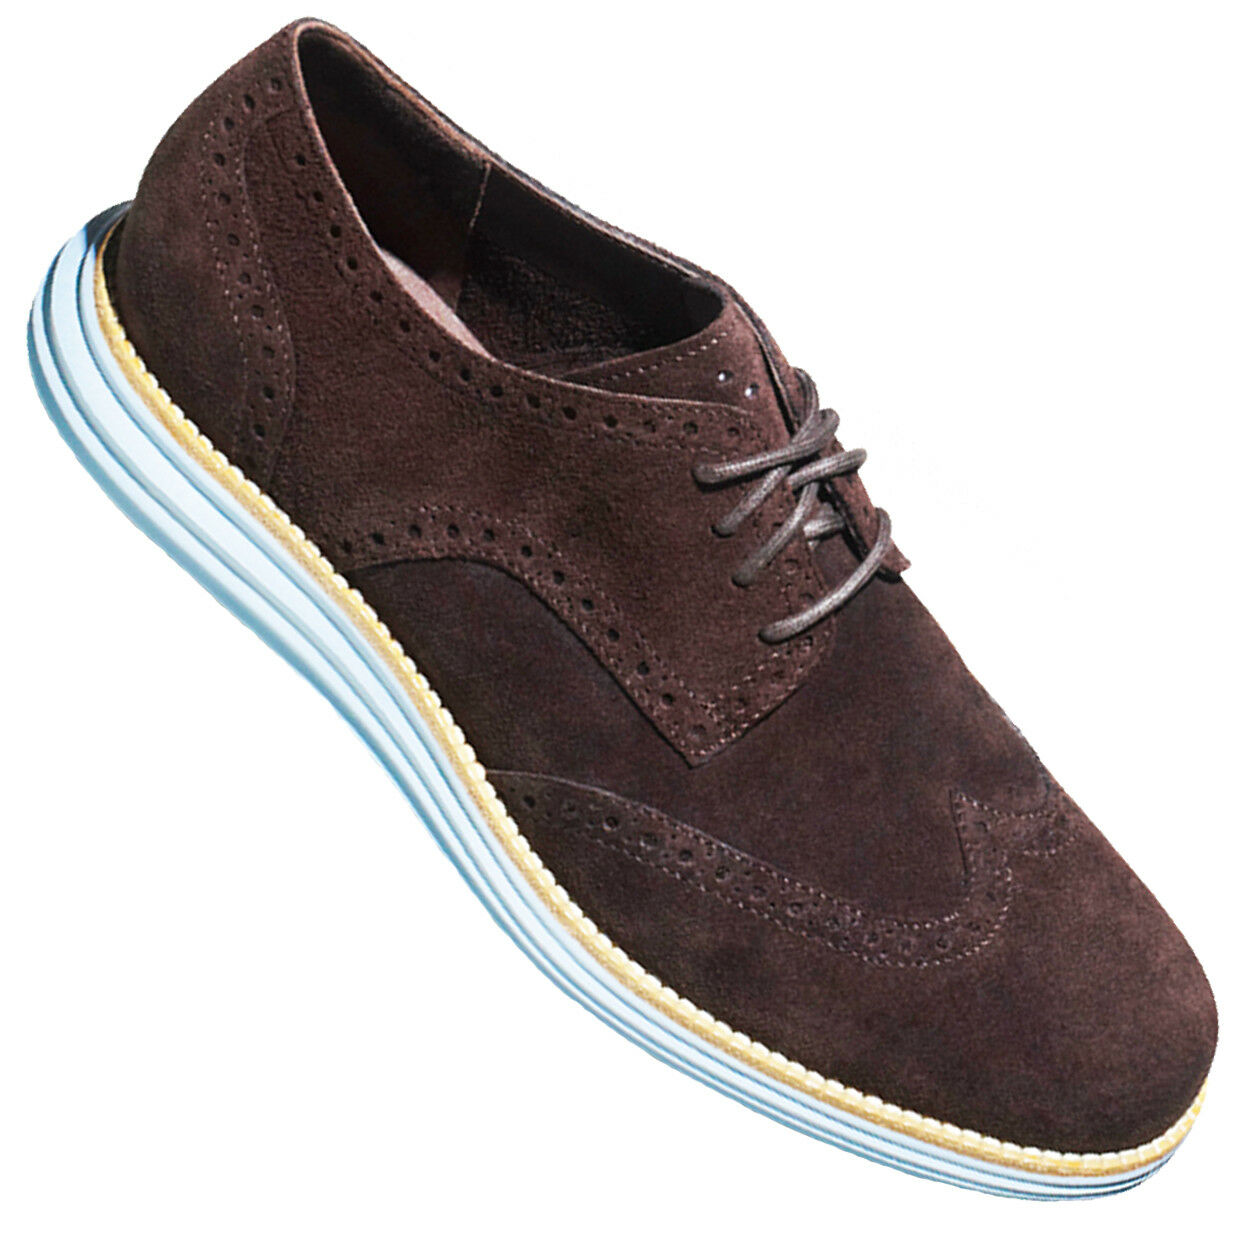 COLE HAAN Lunargrand Wingtip Oxford Brown Suede Pelle Brogue Grey Lace Up 9